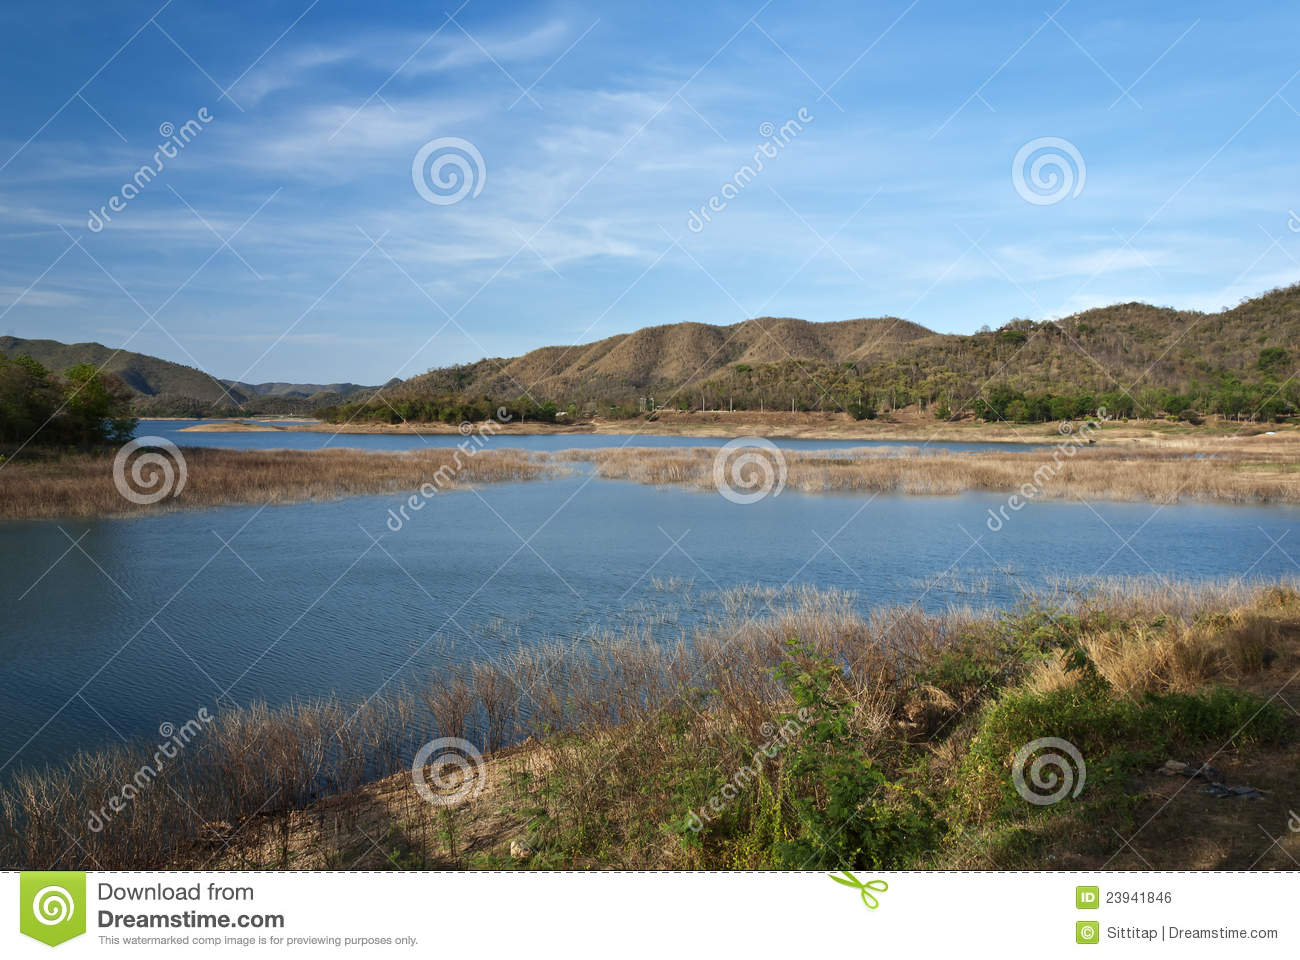 park kaeng krachan dam lake in the area of kaeng krachan national park ...